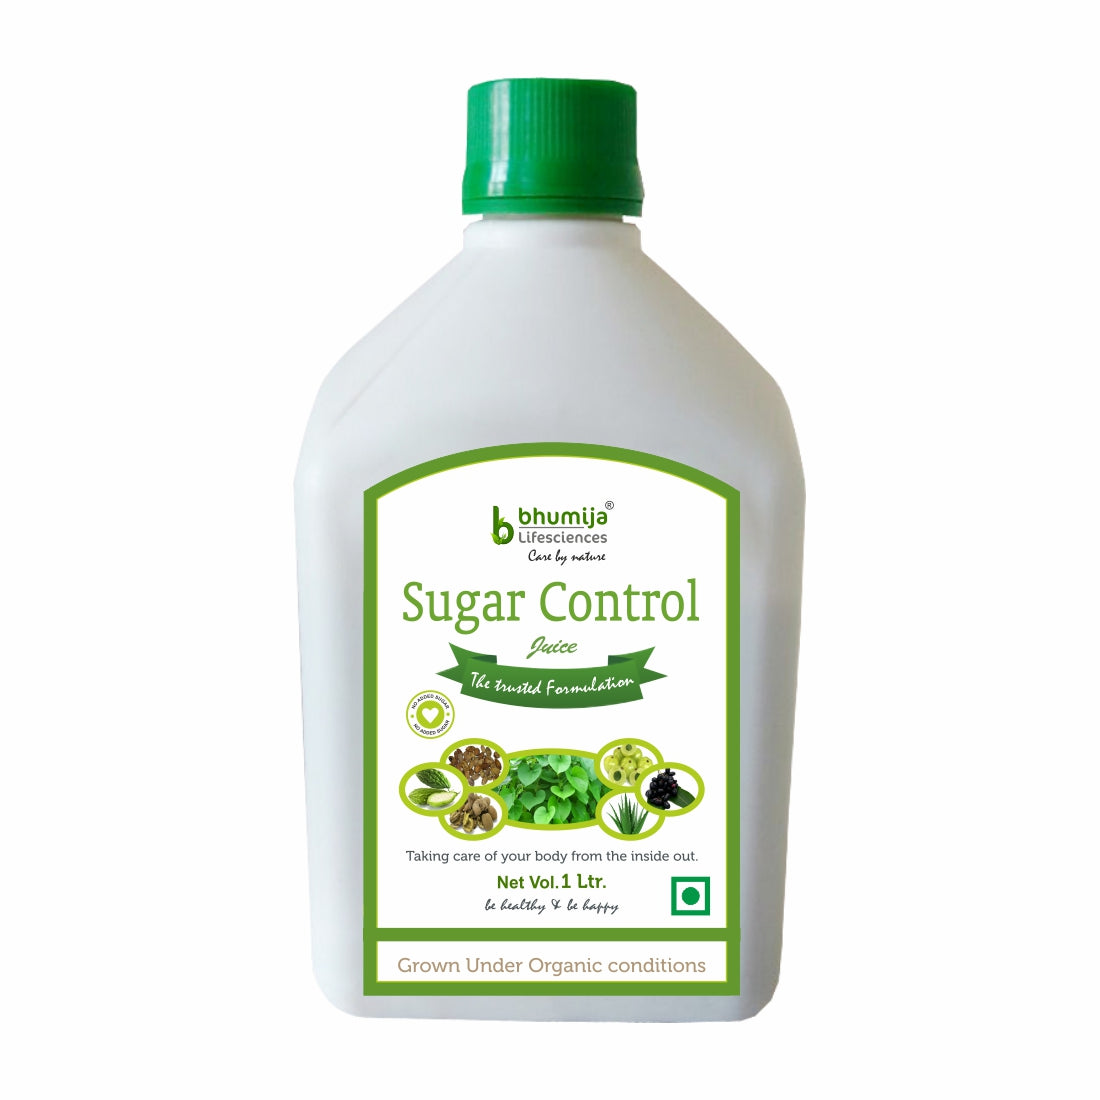 Bhumija Lifesciences Sugar Control Juice Natural Juice No added Sugar 1 Ltr